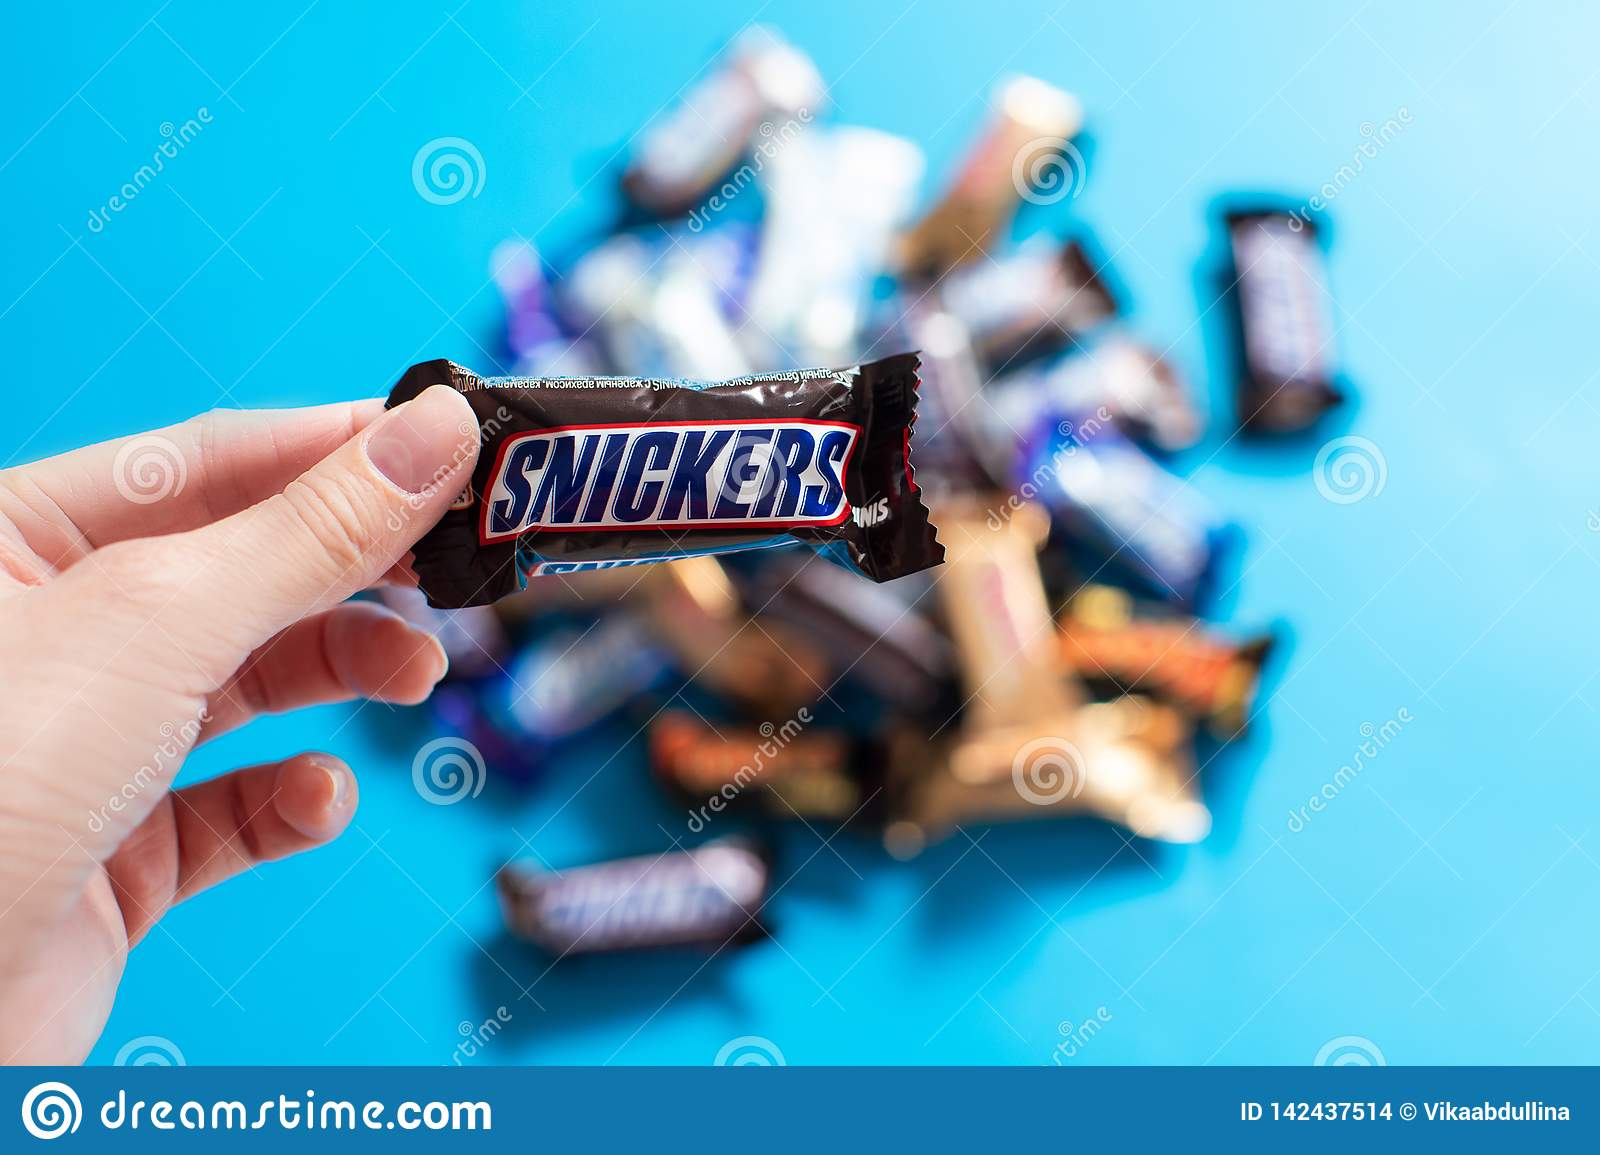 Snickers in hand - popular mini candy chocolate bars on blue background